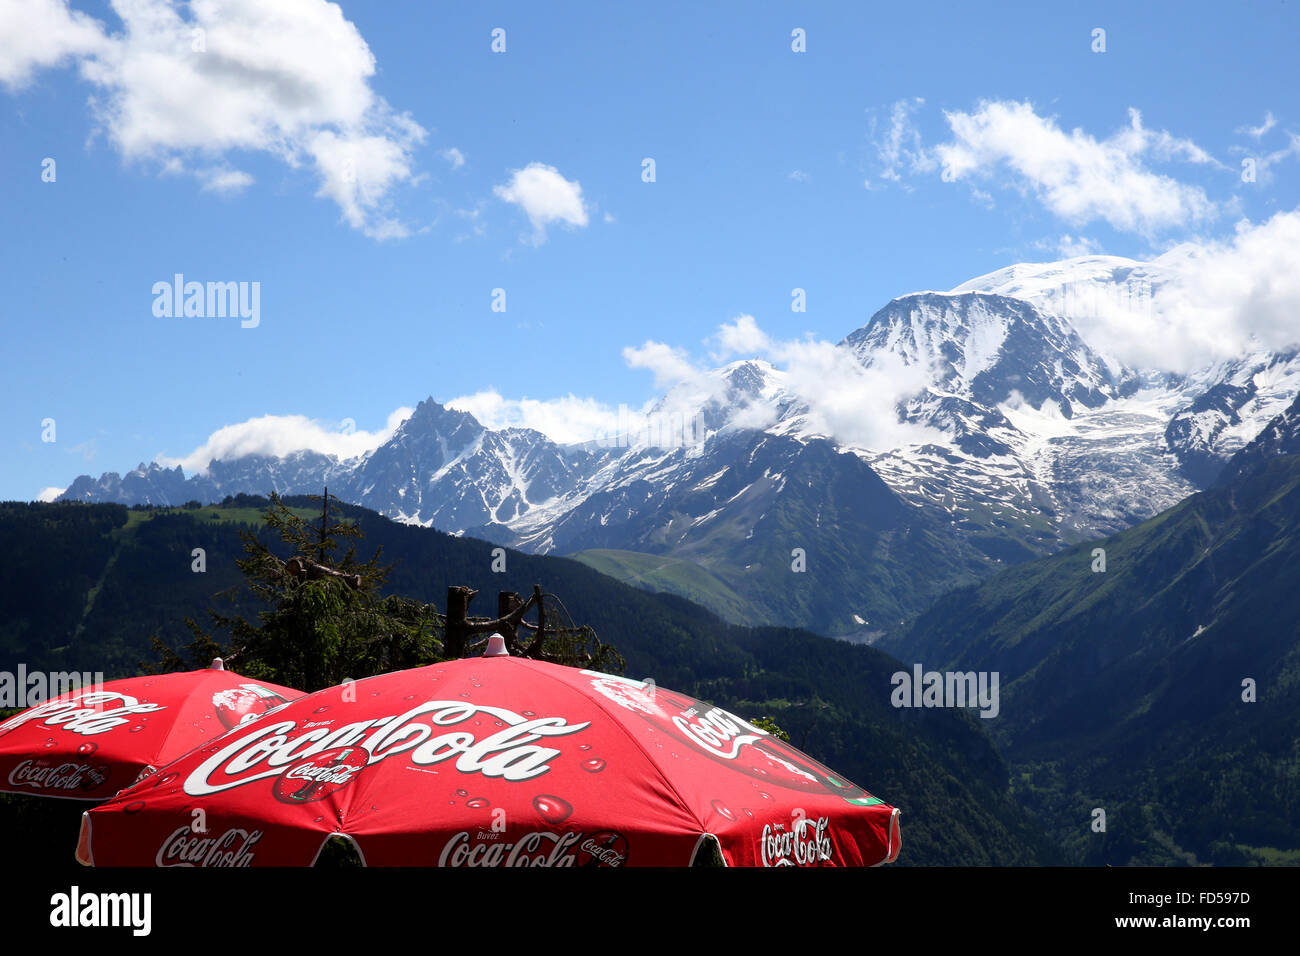 Sunshades facing the Mont Blanc. - Stock Image